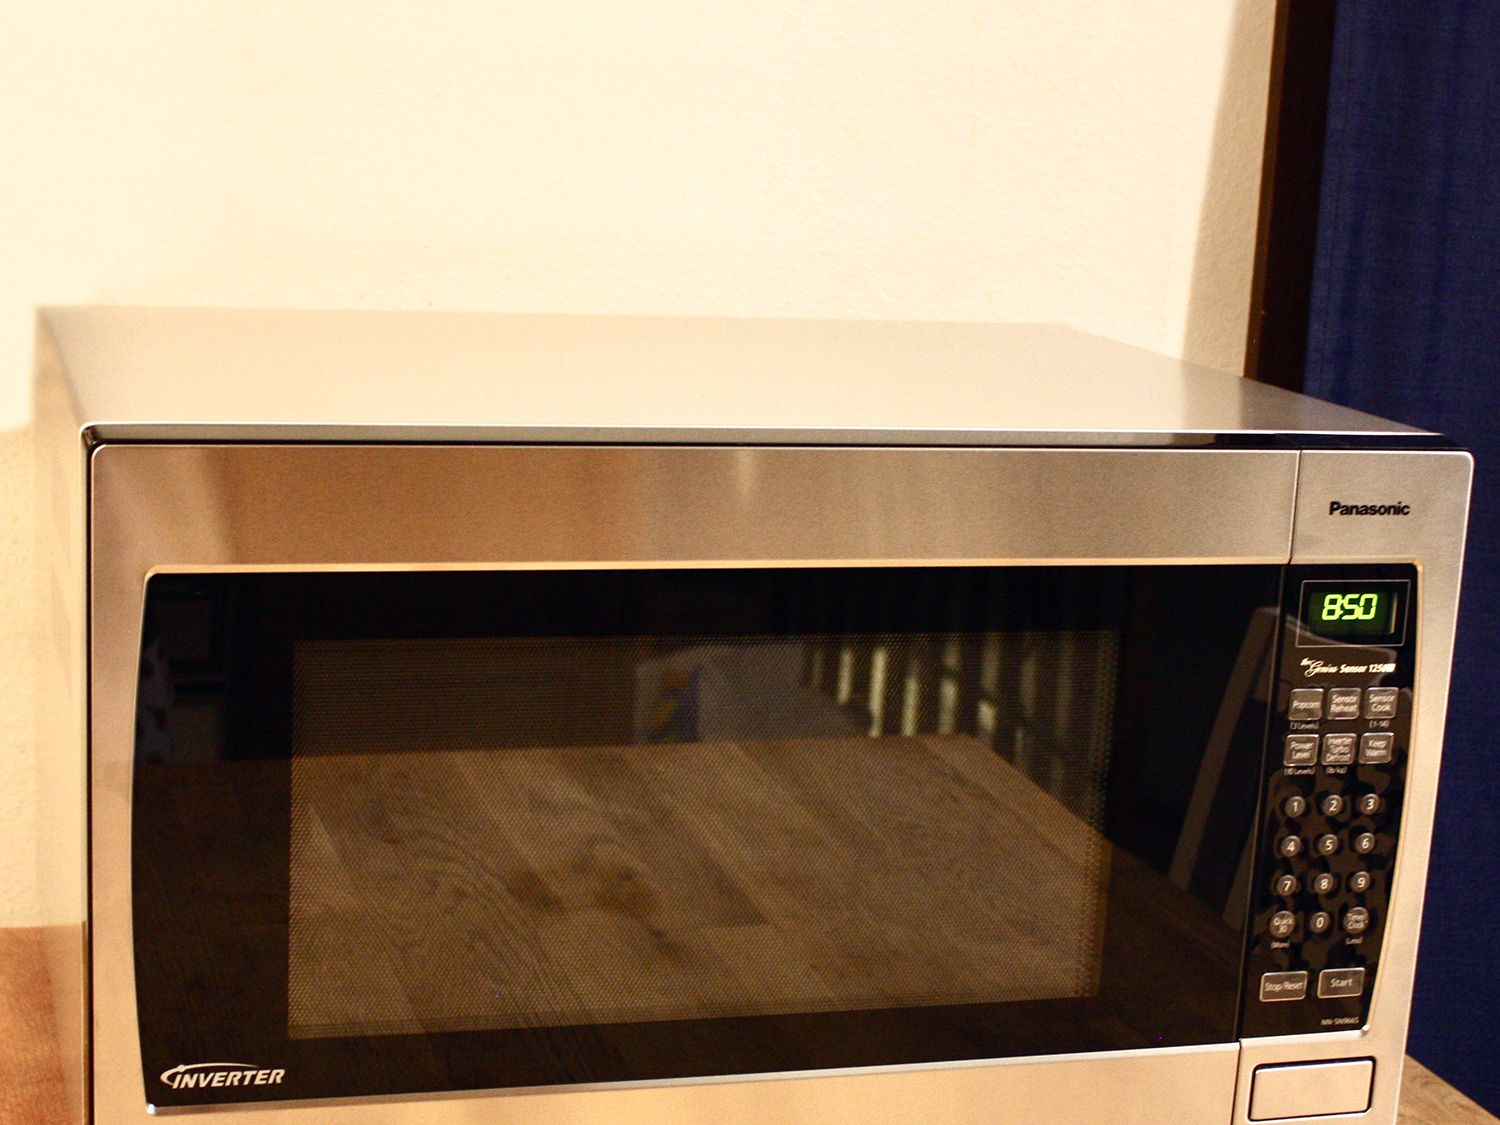 2 2 cu ft countertop built in microwave with inverter technology